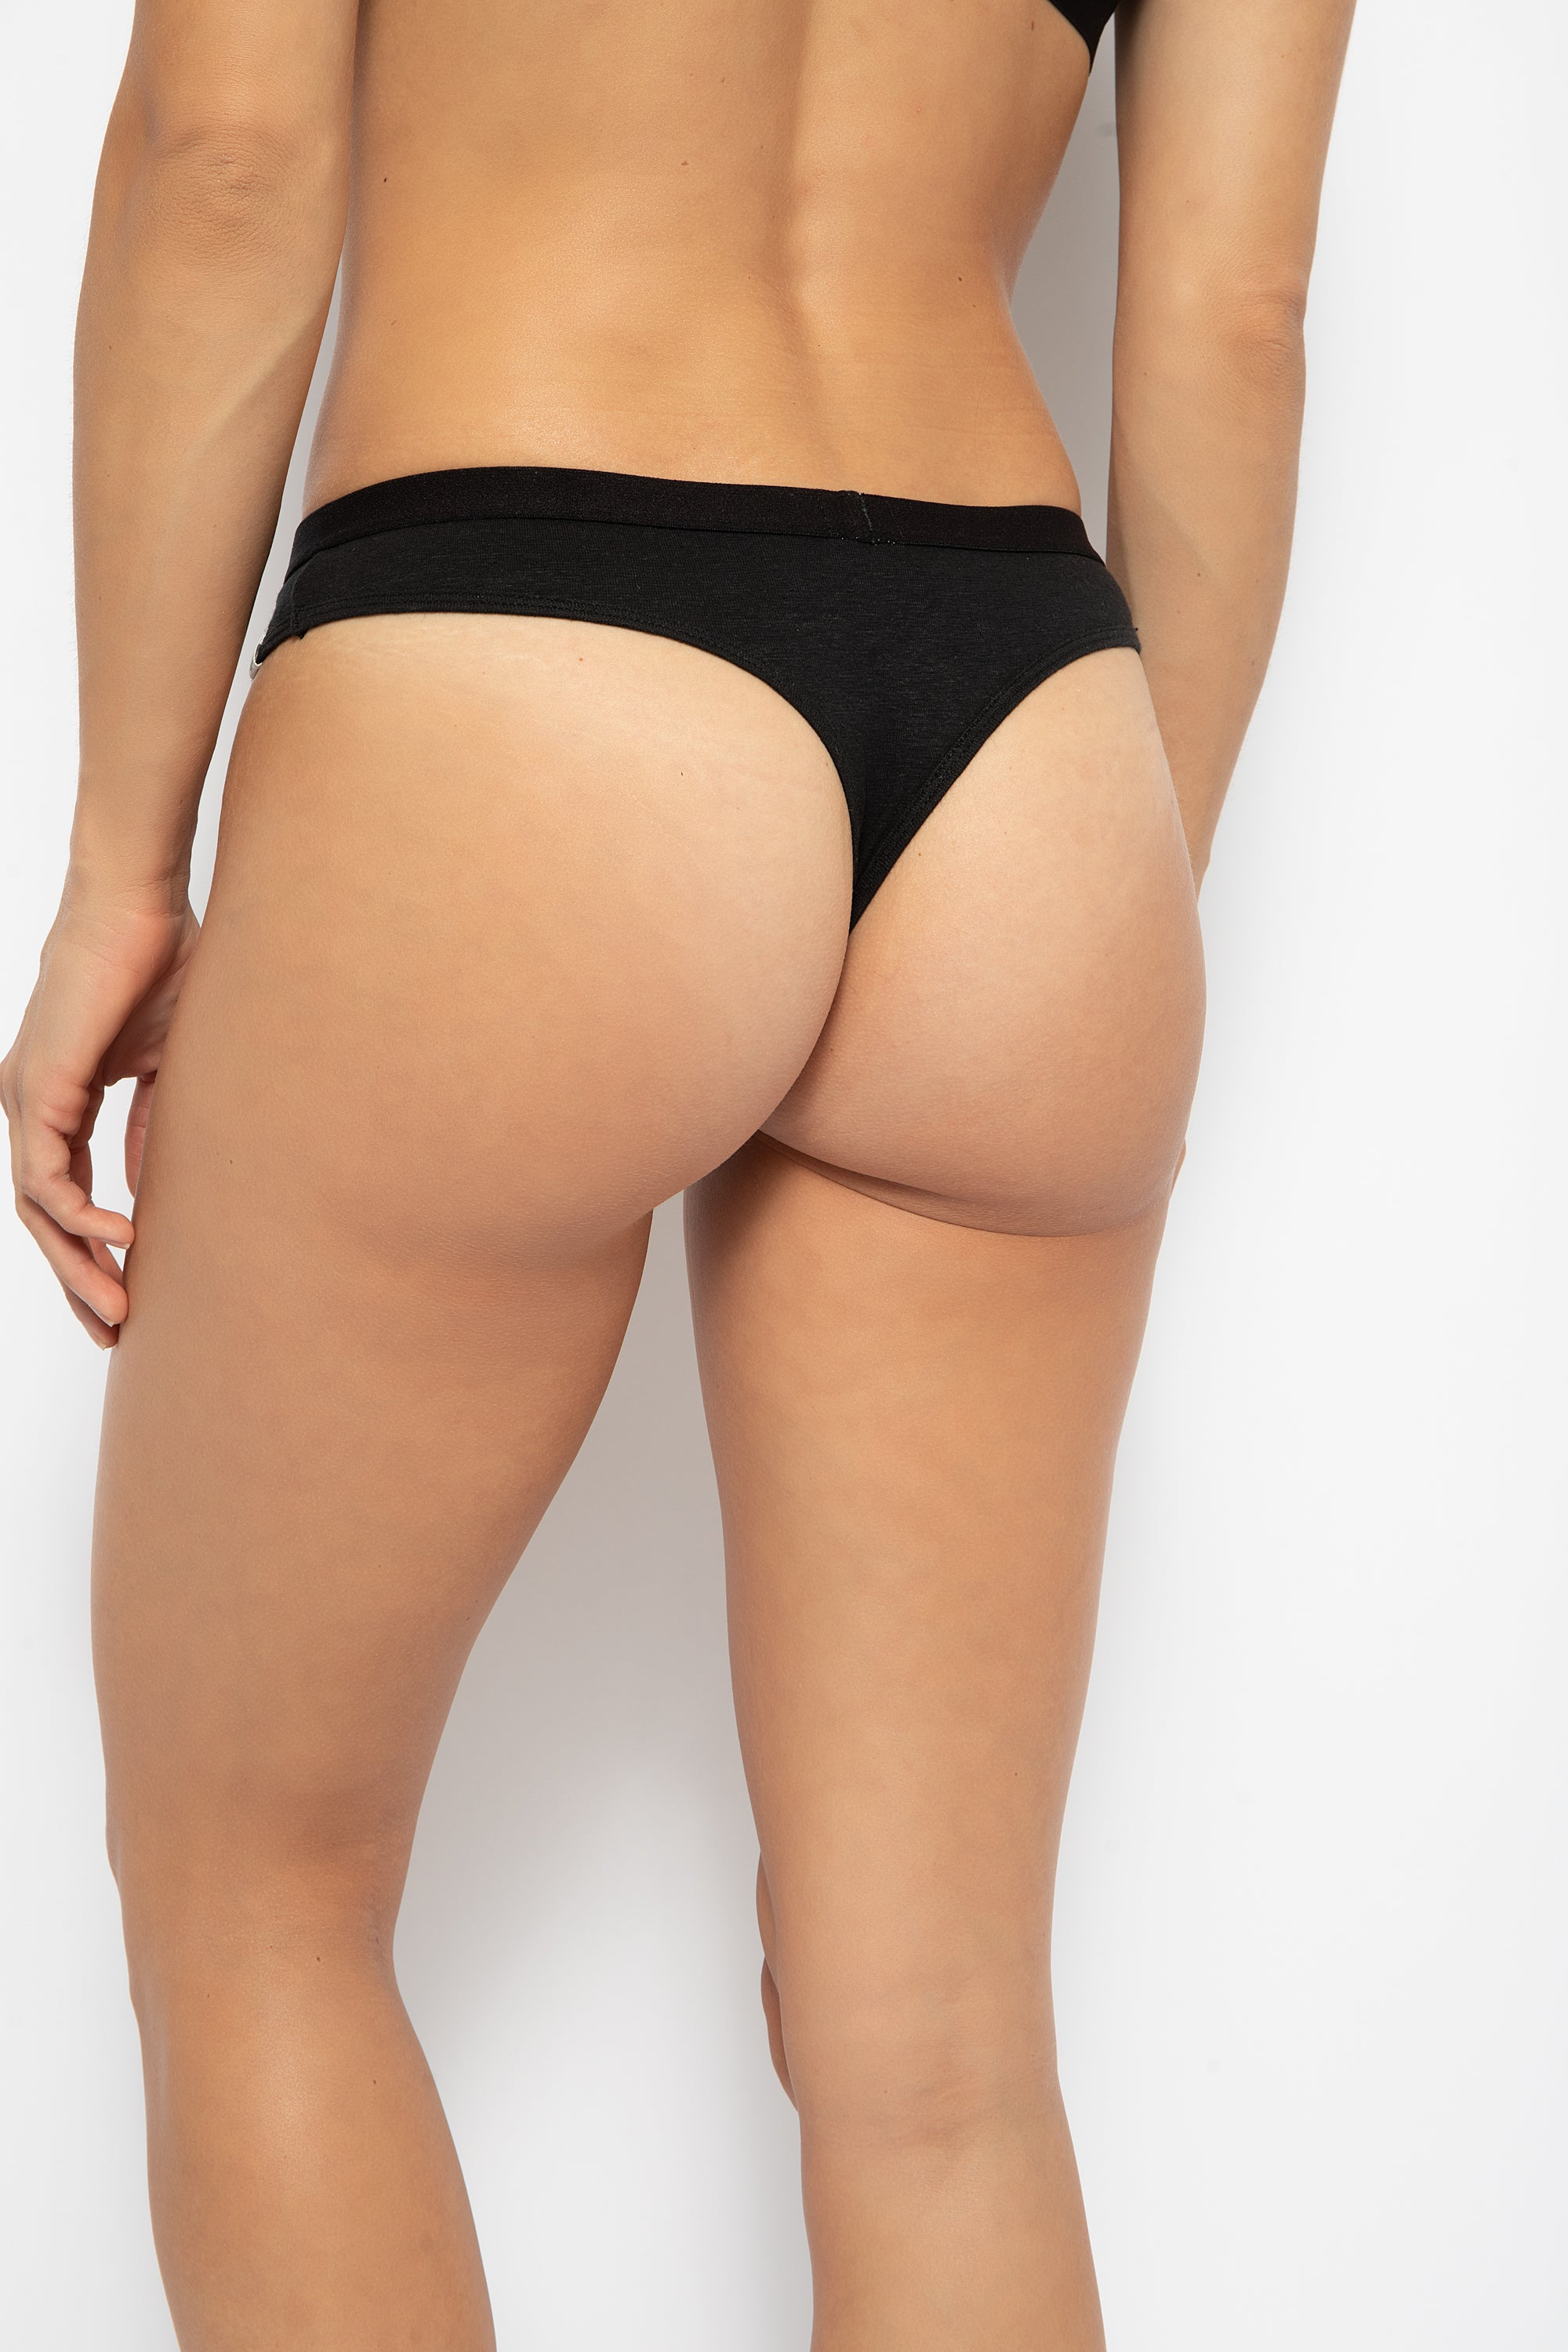 Womens Thongs x3 pack